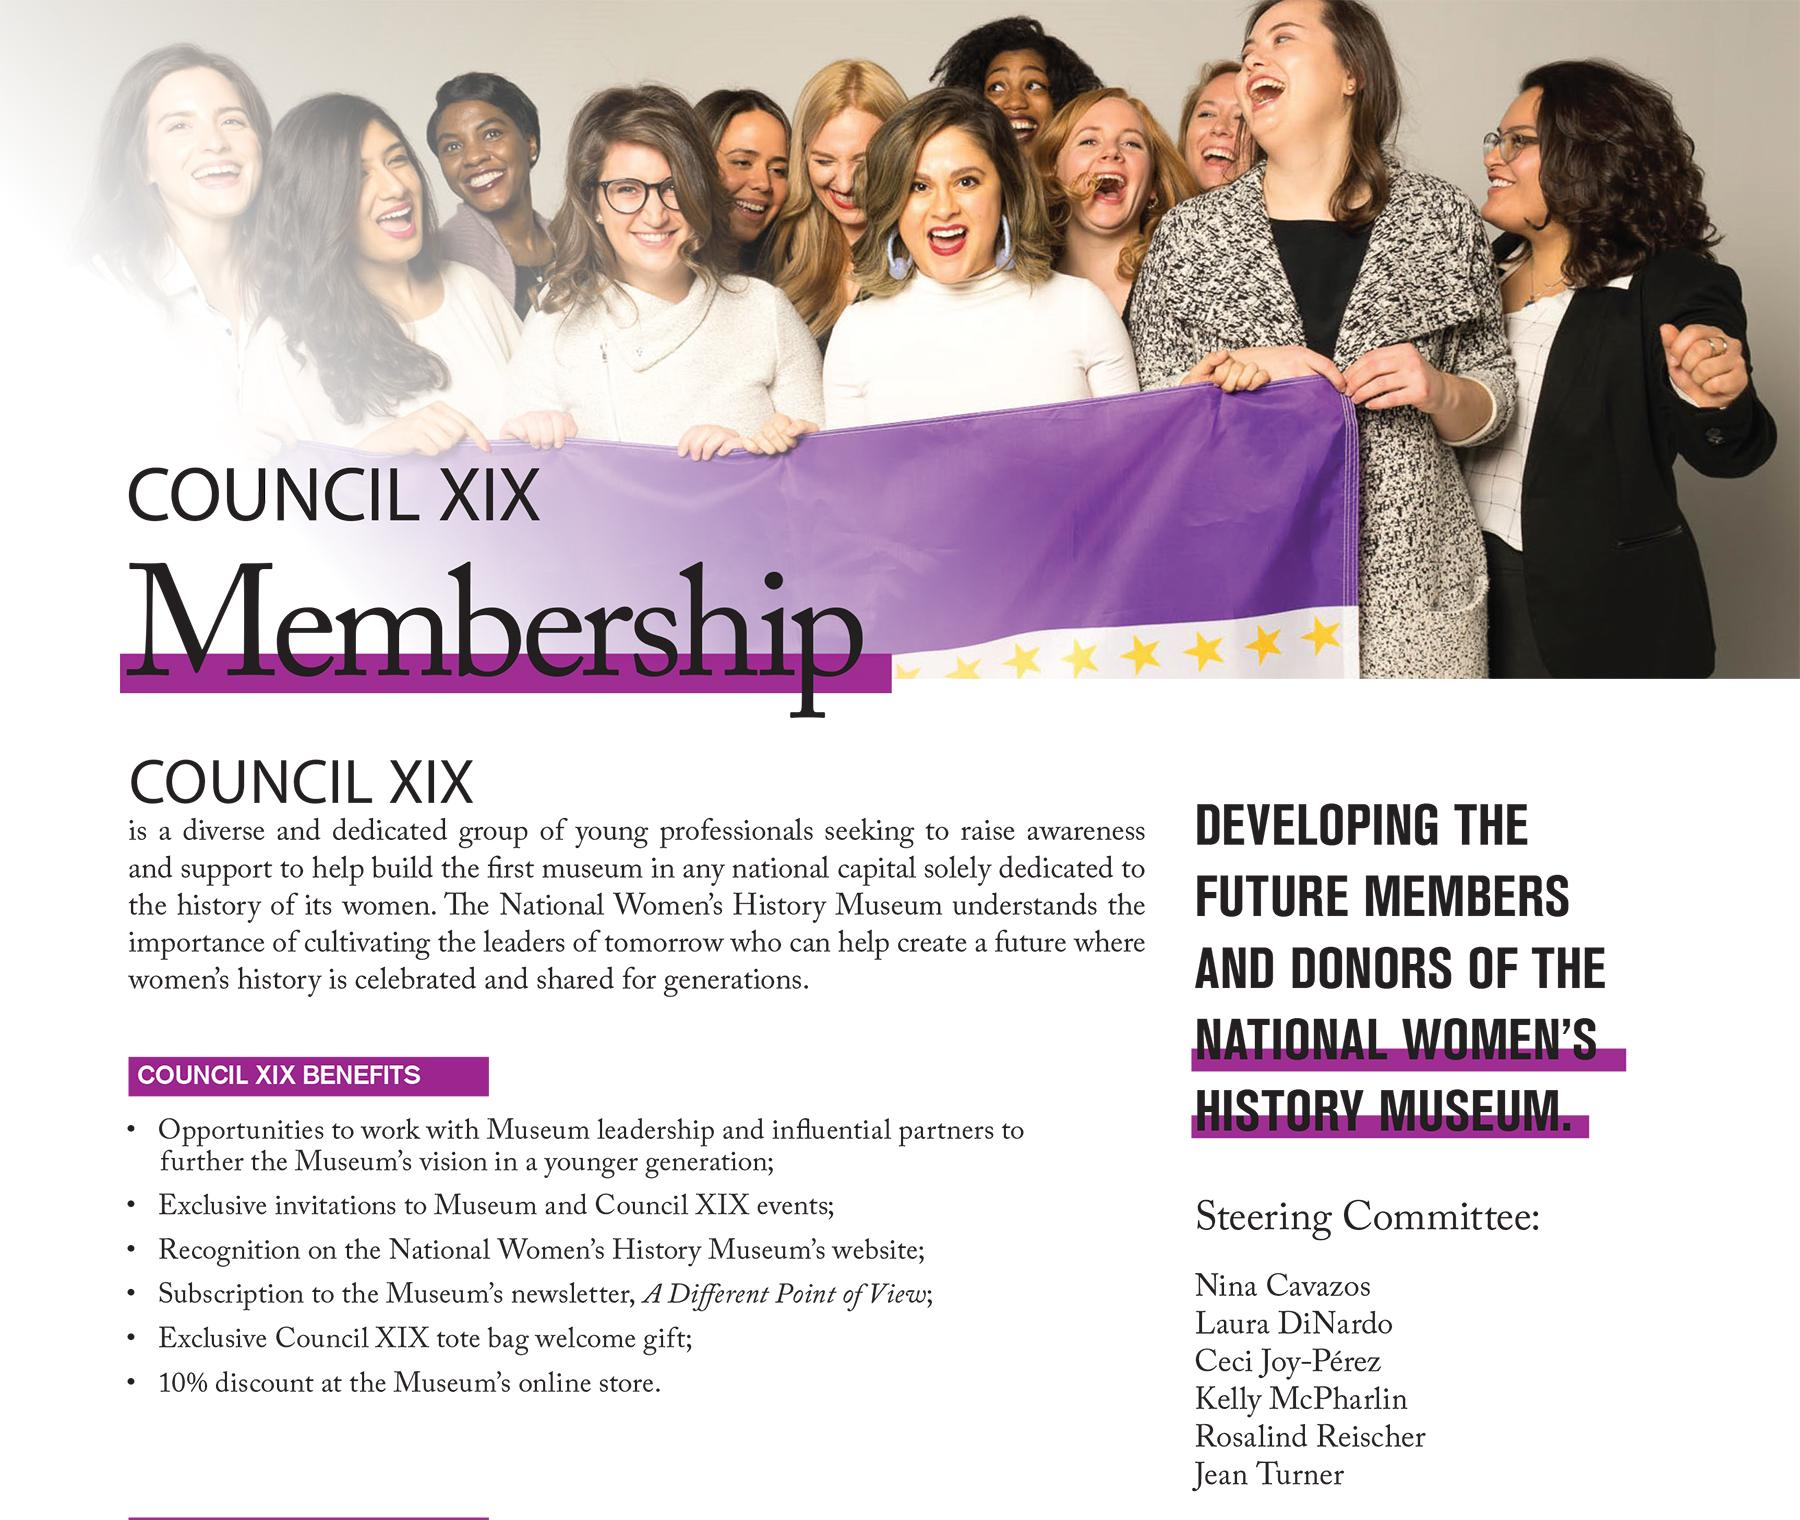 Council XIX One Pager